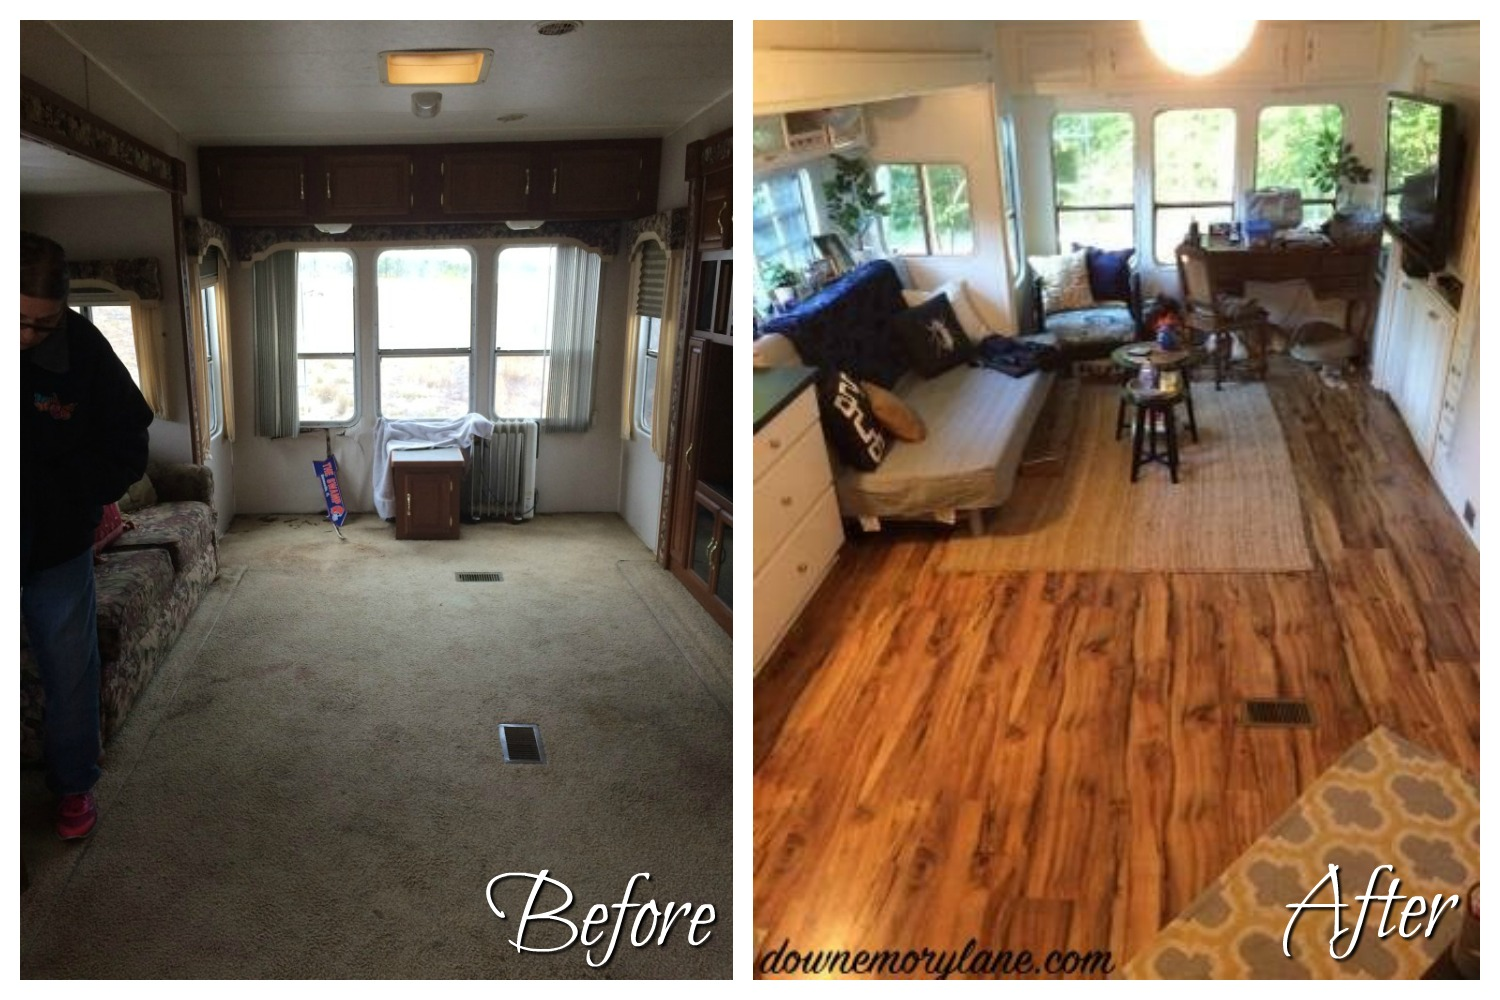 RVObsession - Fifth Wheel Renovations - Lina and her husband have transformed this tired fifth wheel camper into their new temporary home (while they build the dream home).